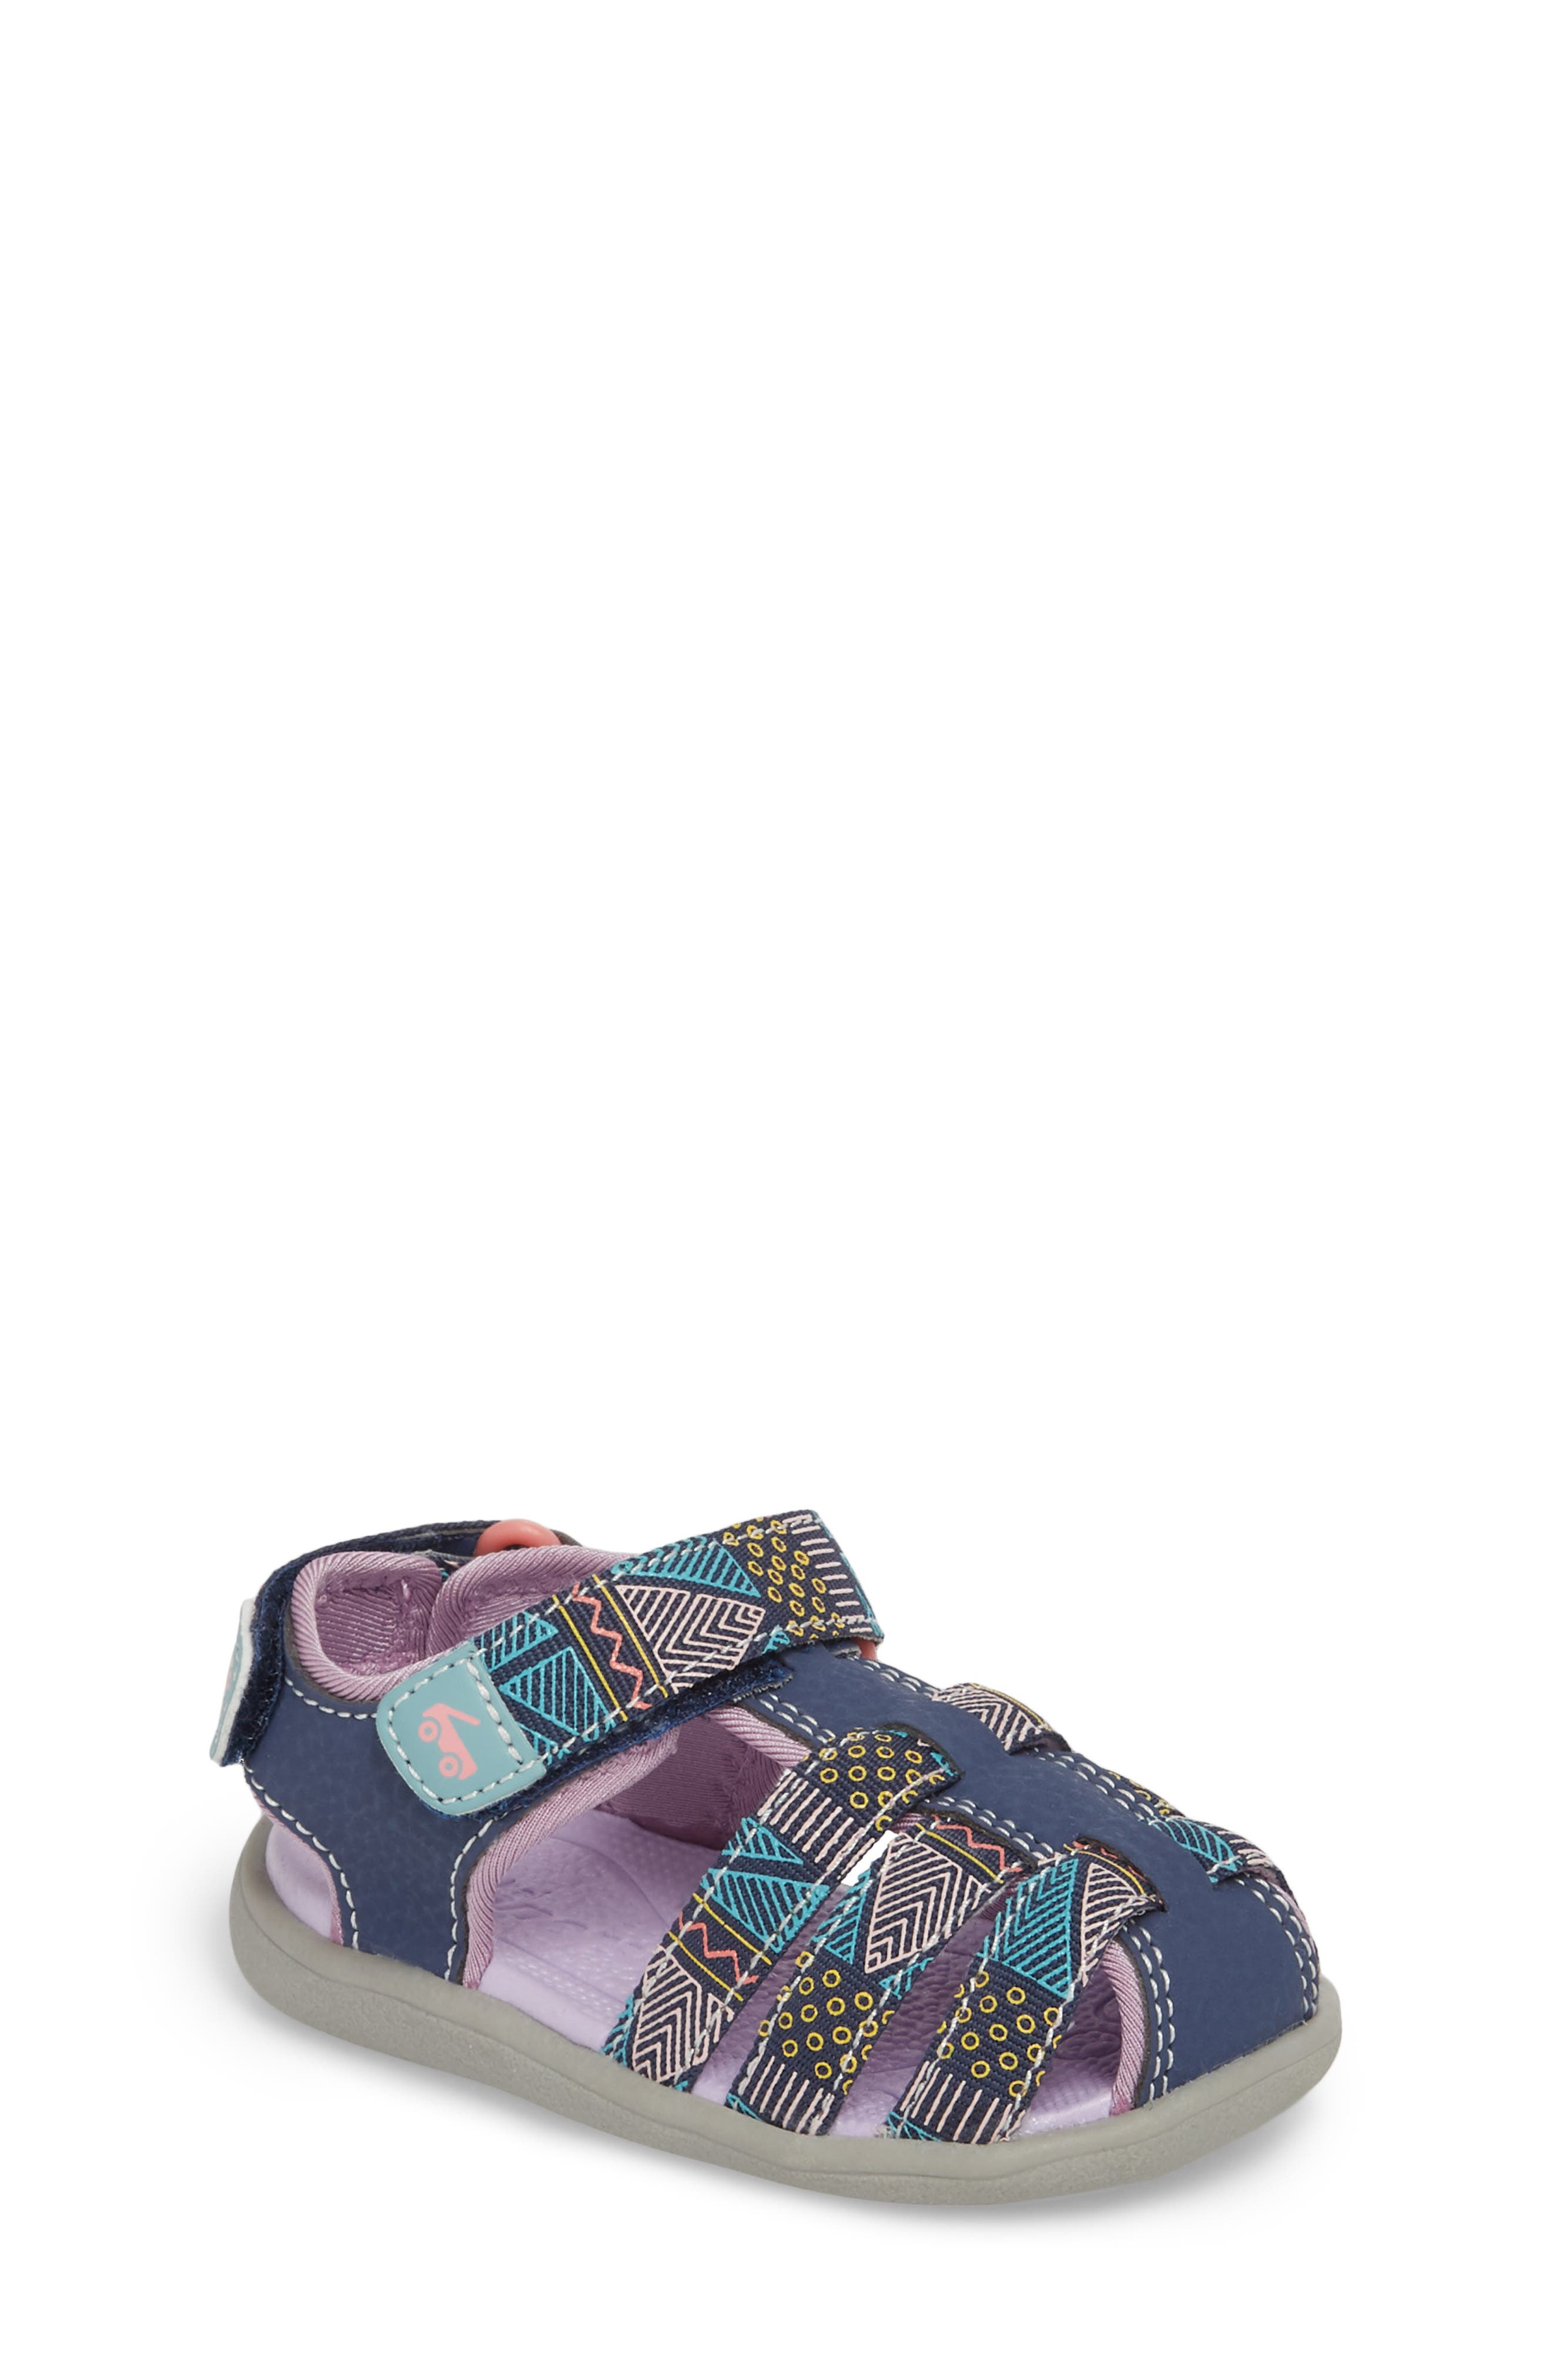 Main Image - See Kai Run Paley Fisherman Sandal (Baby, Walker & Toddler)